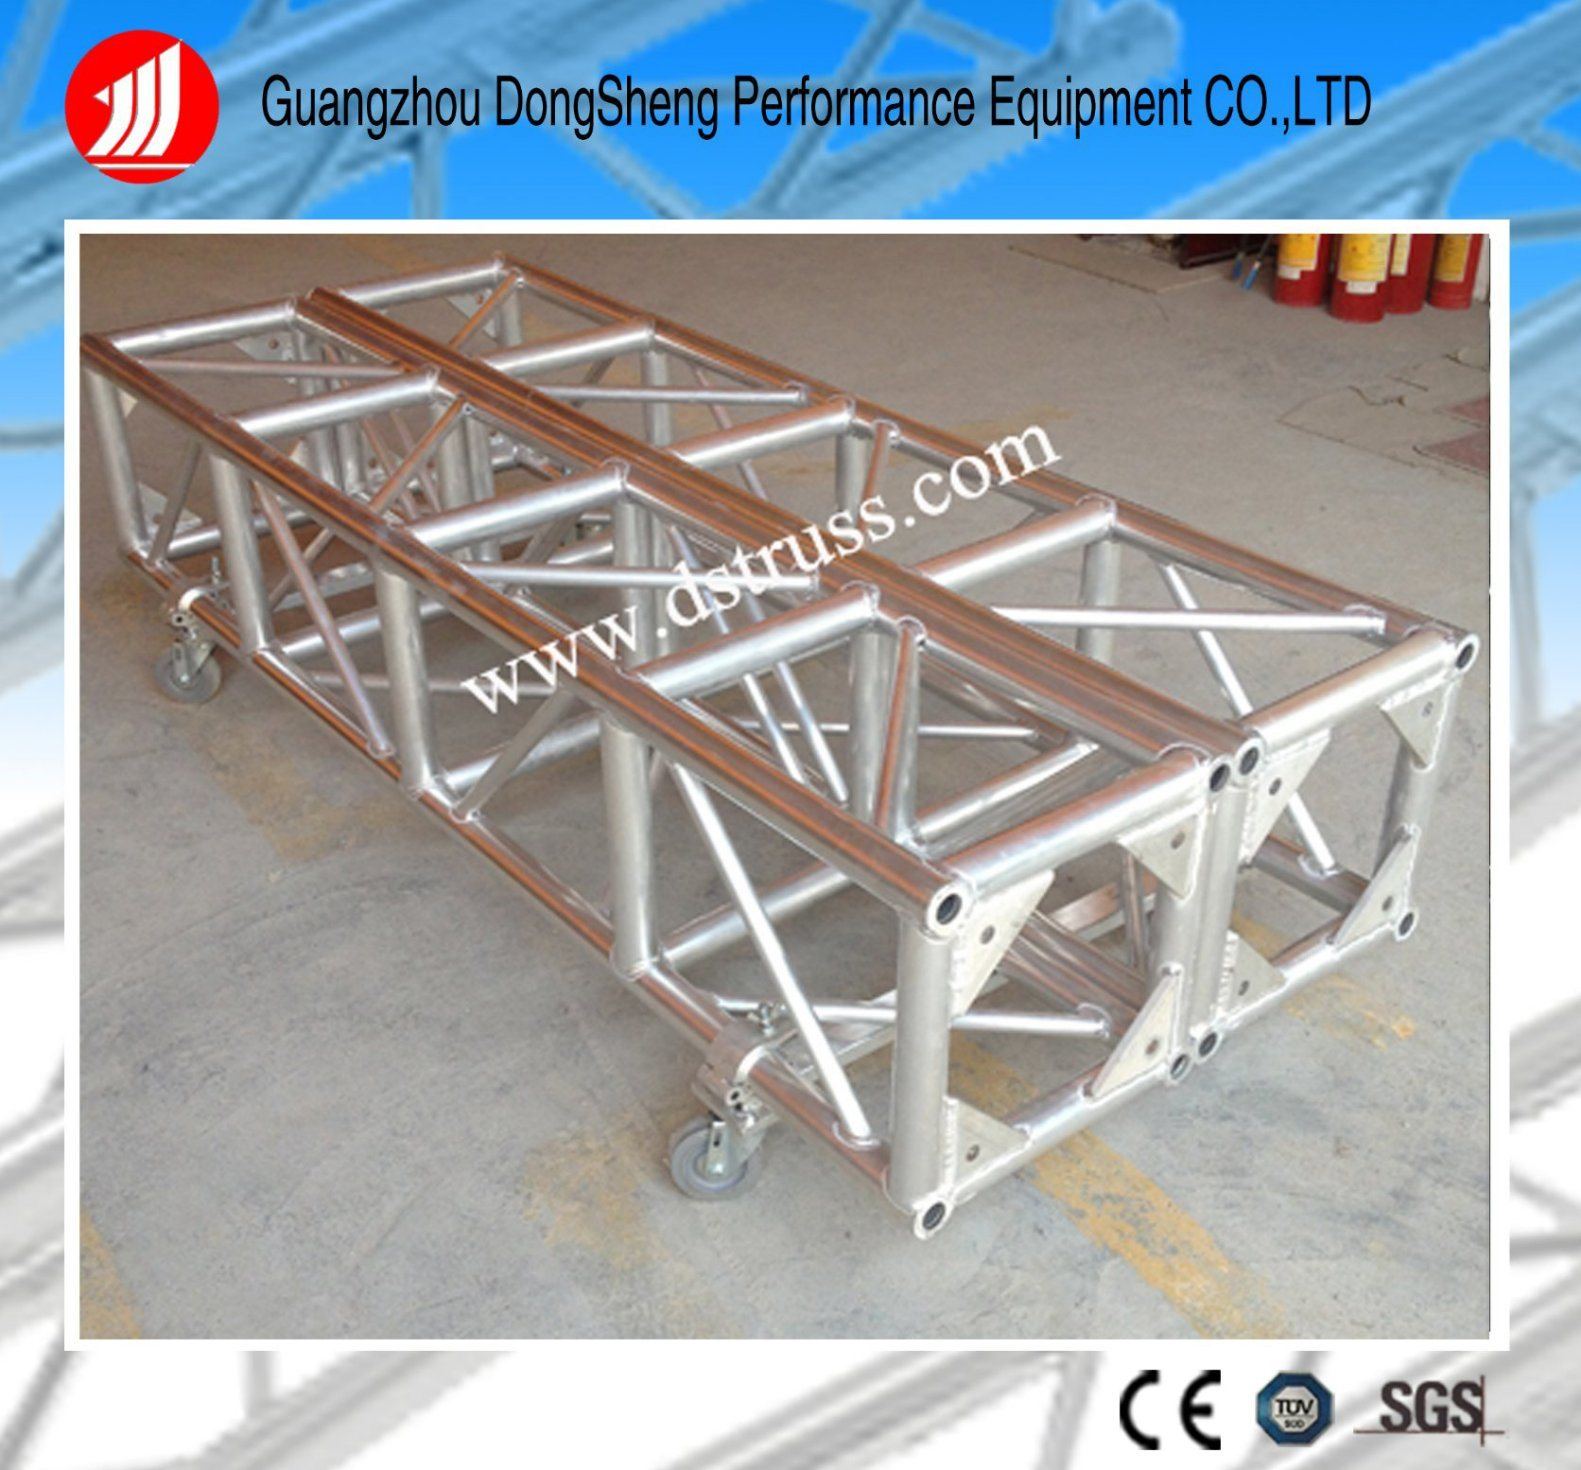 Trade Show Truss Display/ Stage Lighting Truss Make in China